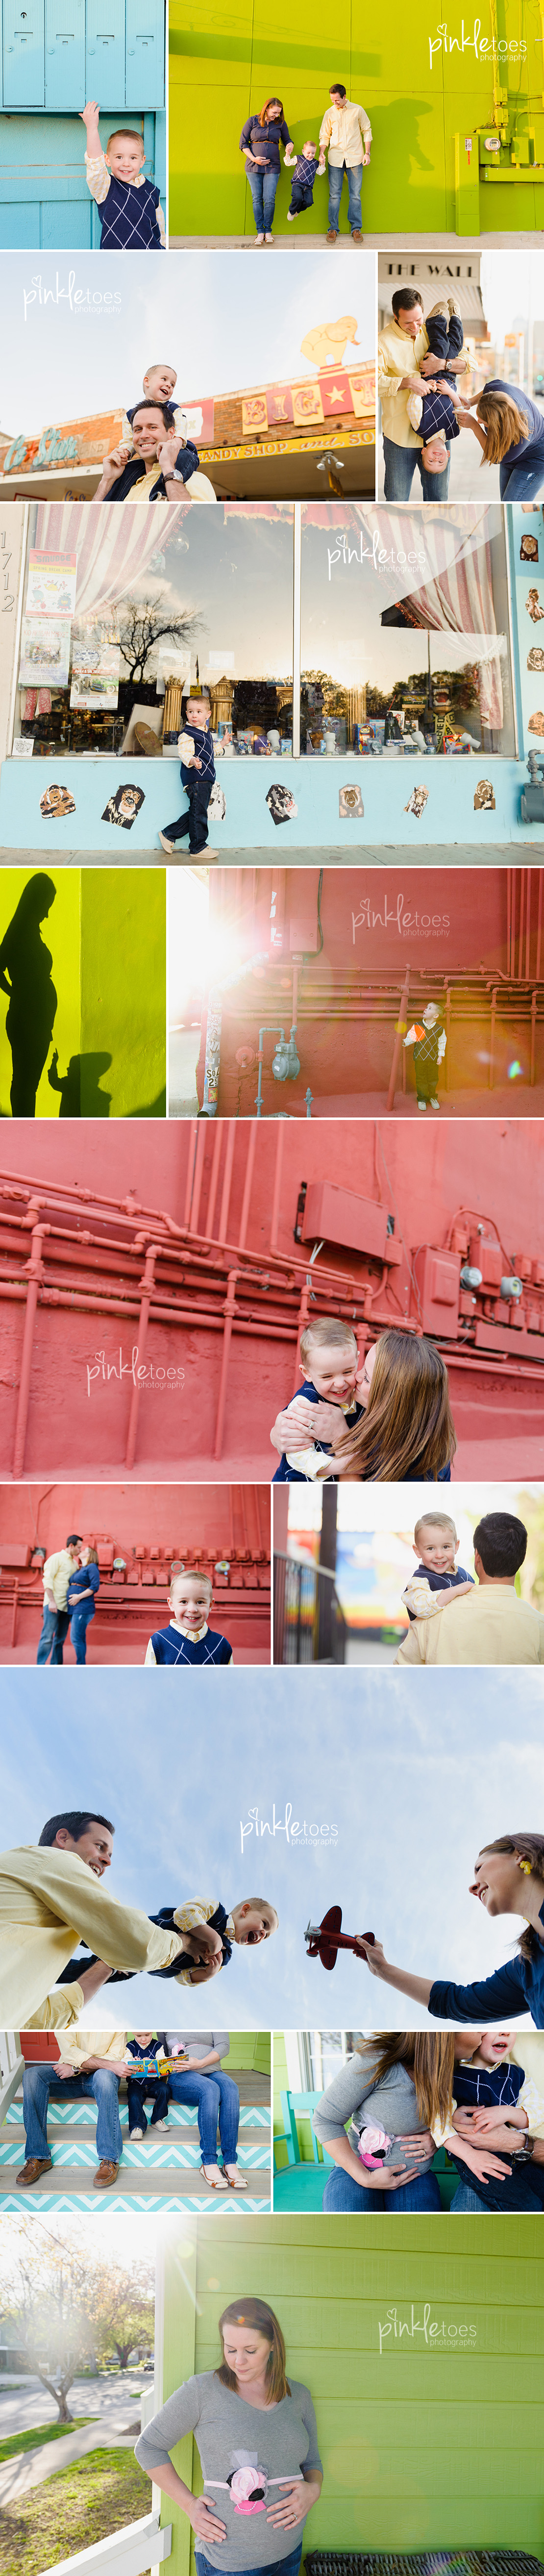 cf-austin-family-maternity-pregnancy-portraits-urban-downtown-modern-colorful-photography